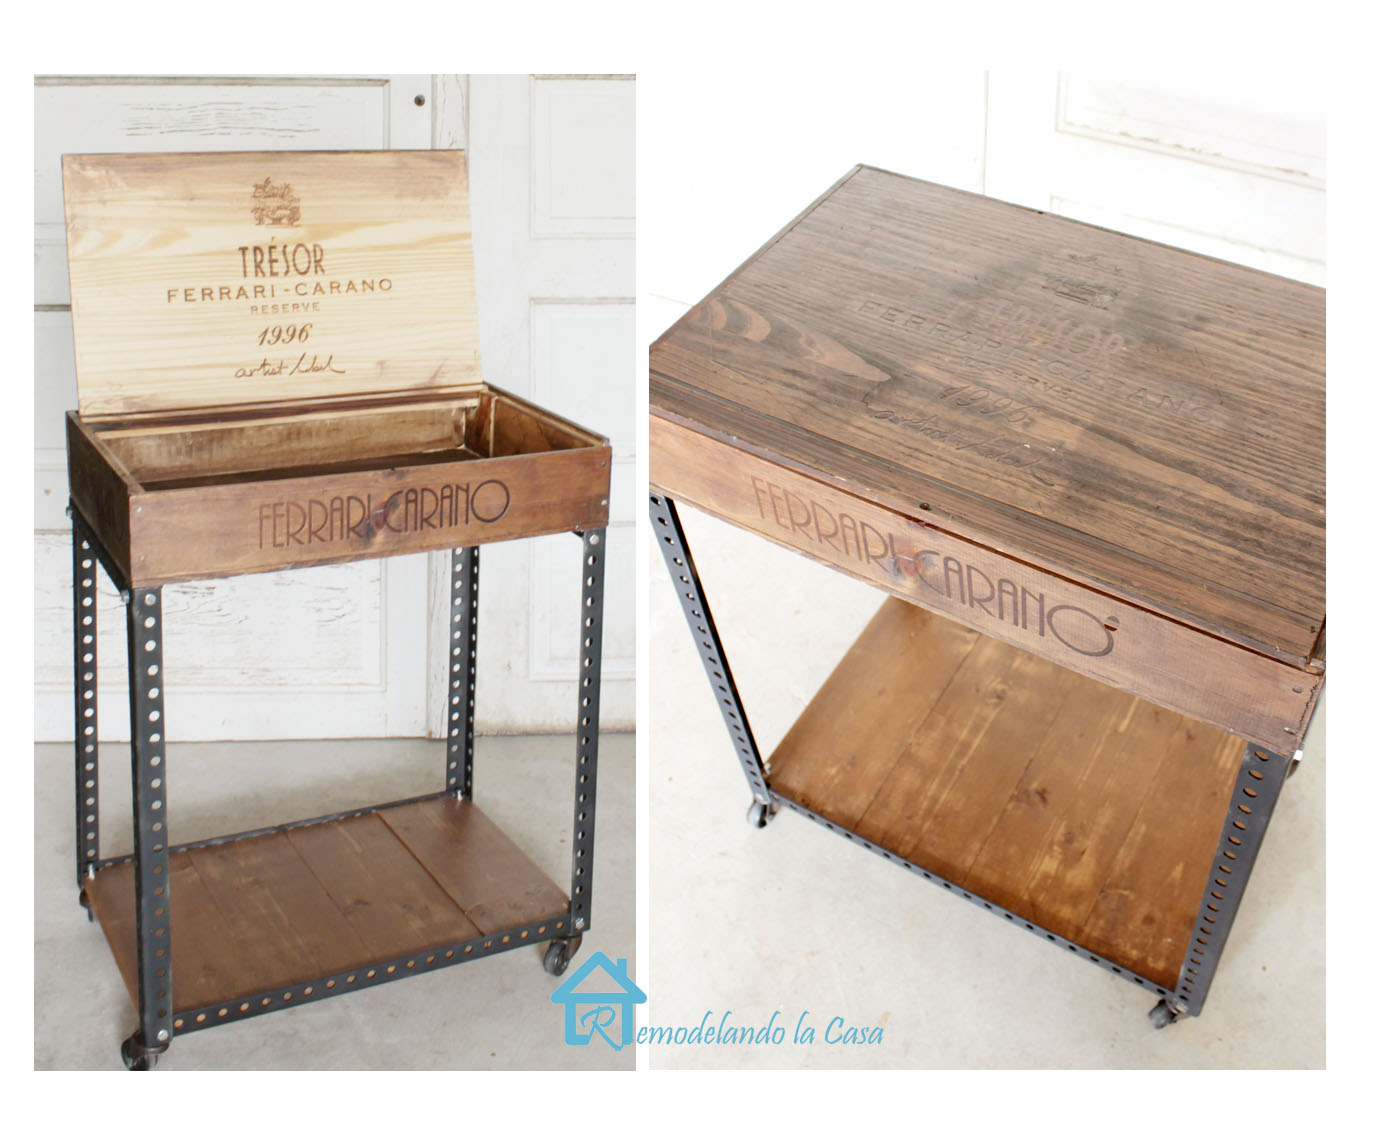 Tresr Ferrari Carano wooden wine crate used as side table